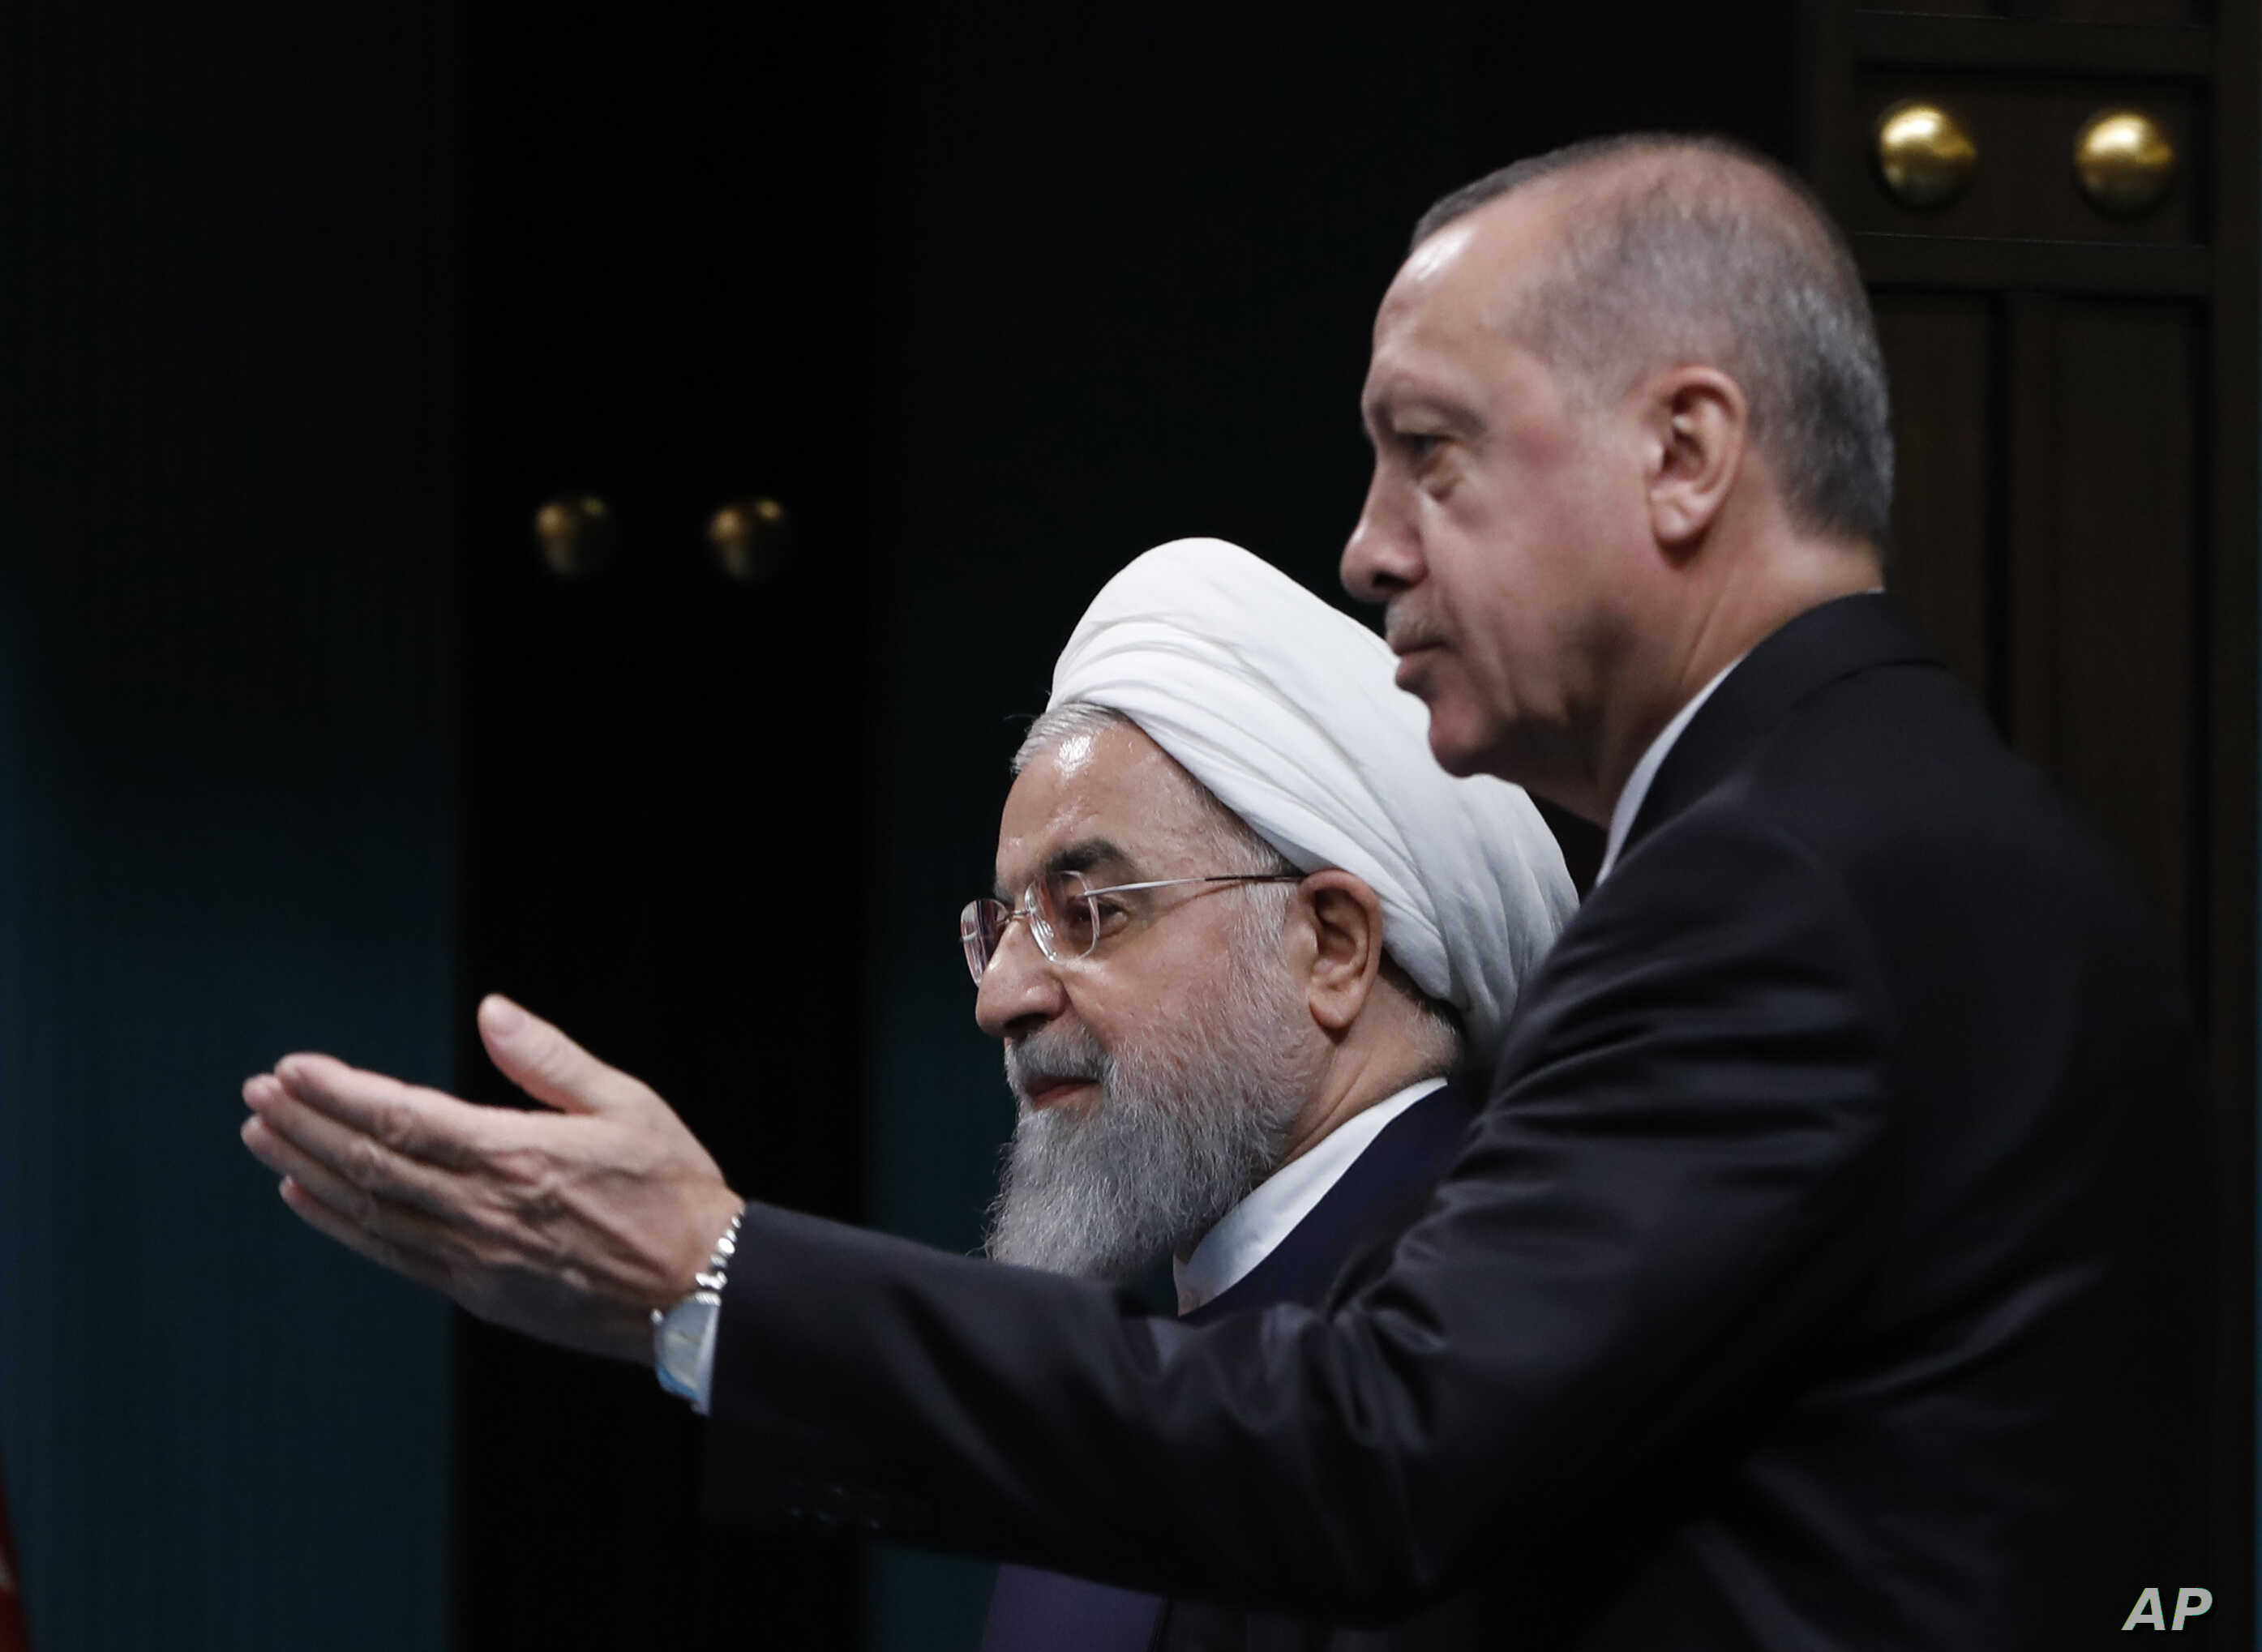 Turkey Iran SyriaTurkey's President Recep Tayyip Erdogan, right, gestures to Iran's President Hassan Rouhani, as they arrive for a news conference following their meeting at the Presidential Palace in Ankara, Dec. 20, 2018.